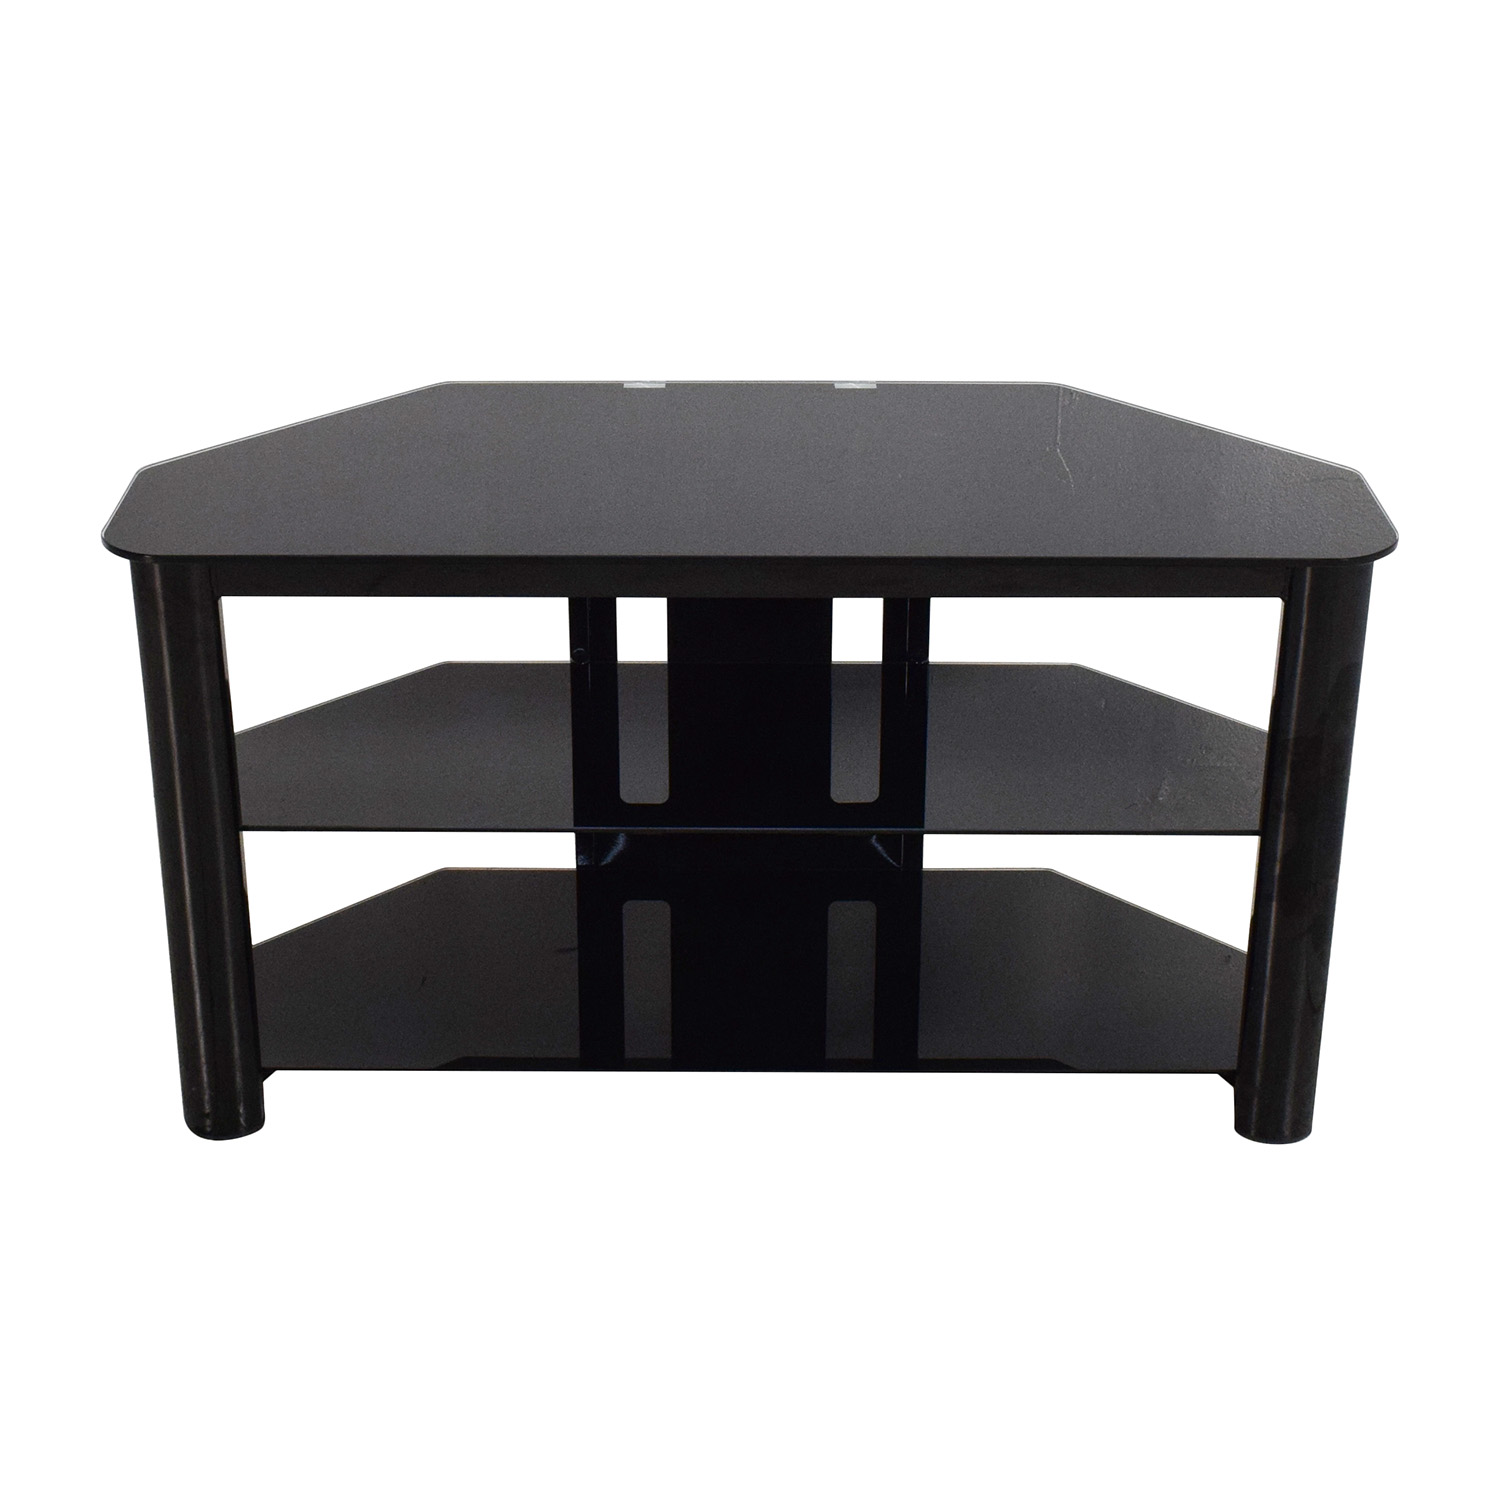 61 off best buy best buy black glass tv stand storage for Where to buy tv console